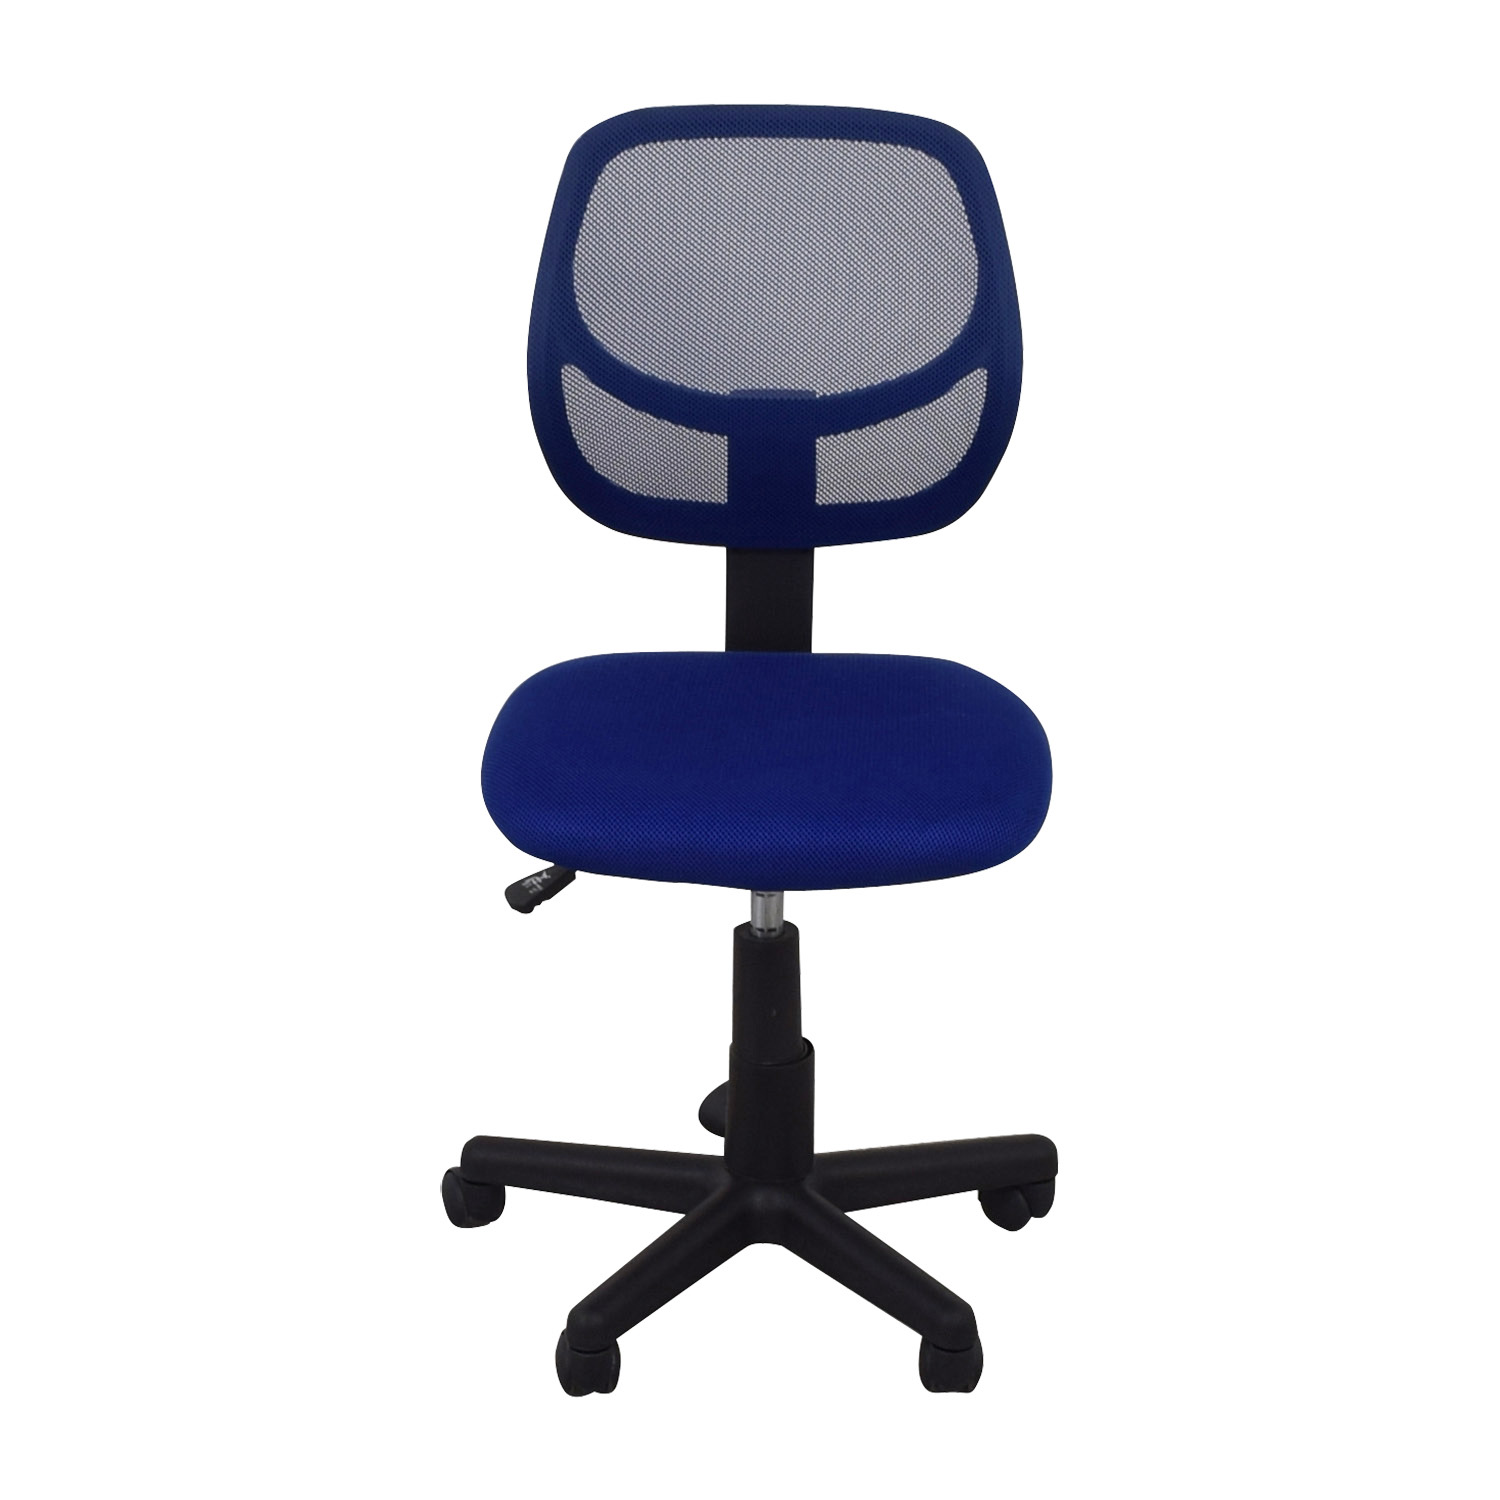 buy  Blue Office Chair online